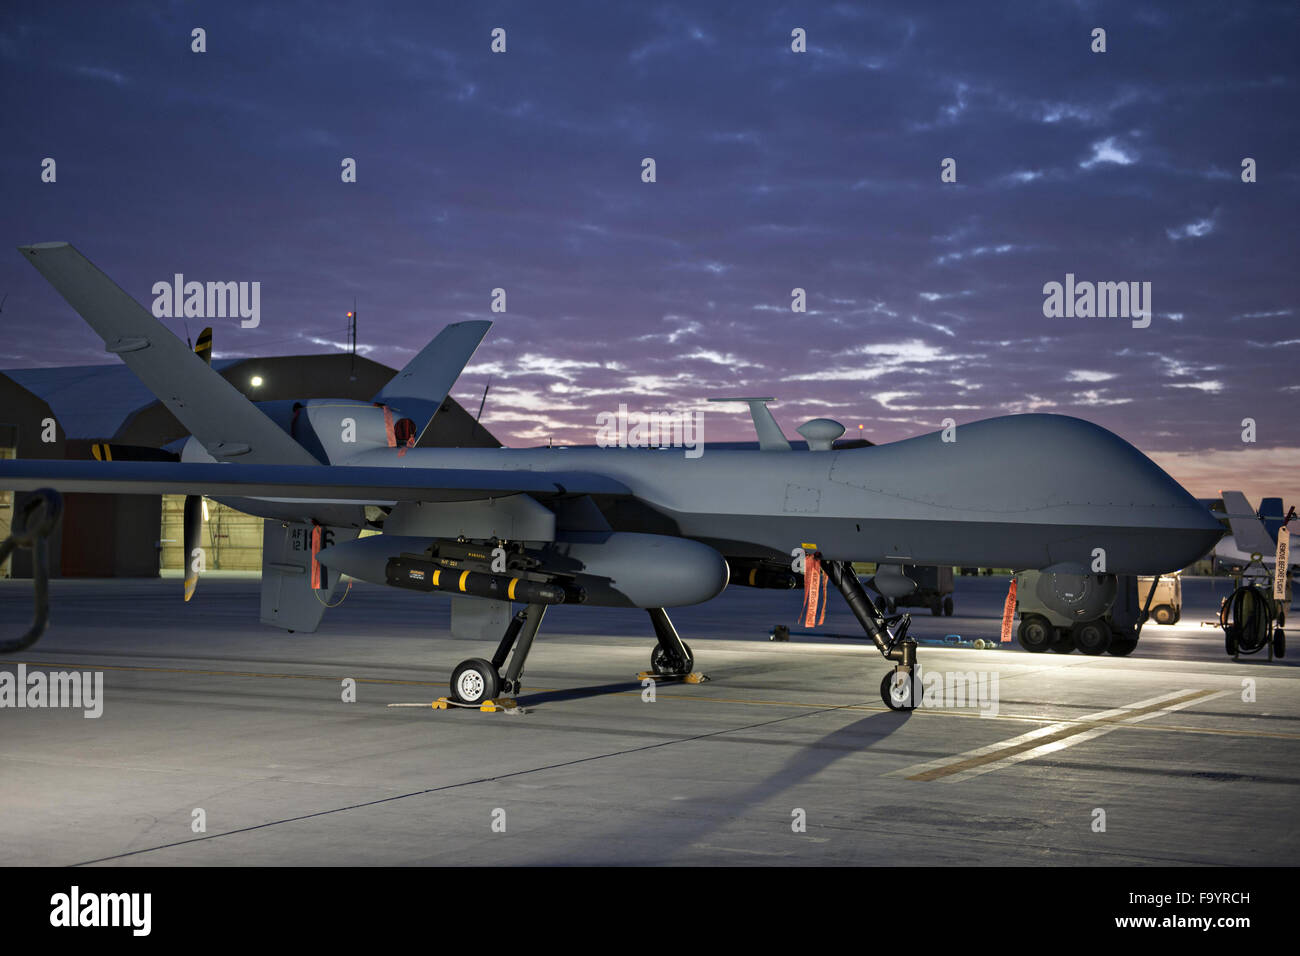 A U.S. Air Force extended range MQ-9 Reaper drone with the 62nd Expeditionary Reconnaissance Squadron on the ramp - Stock Image